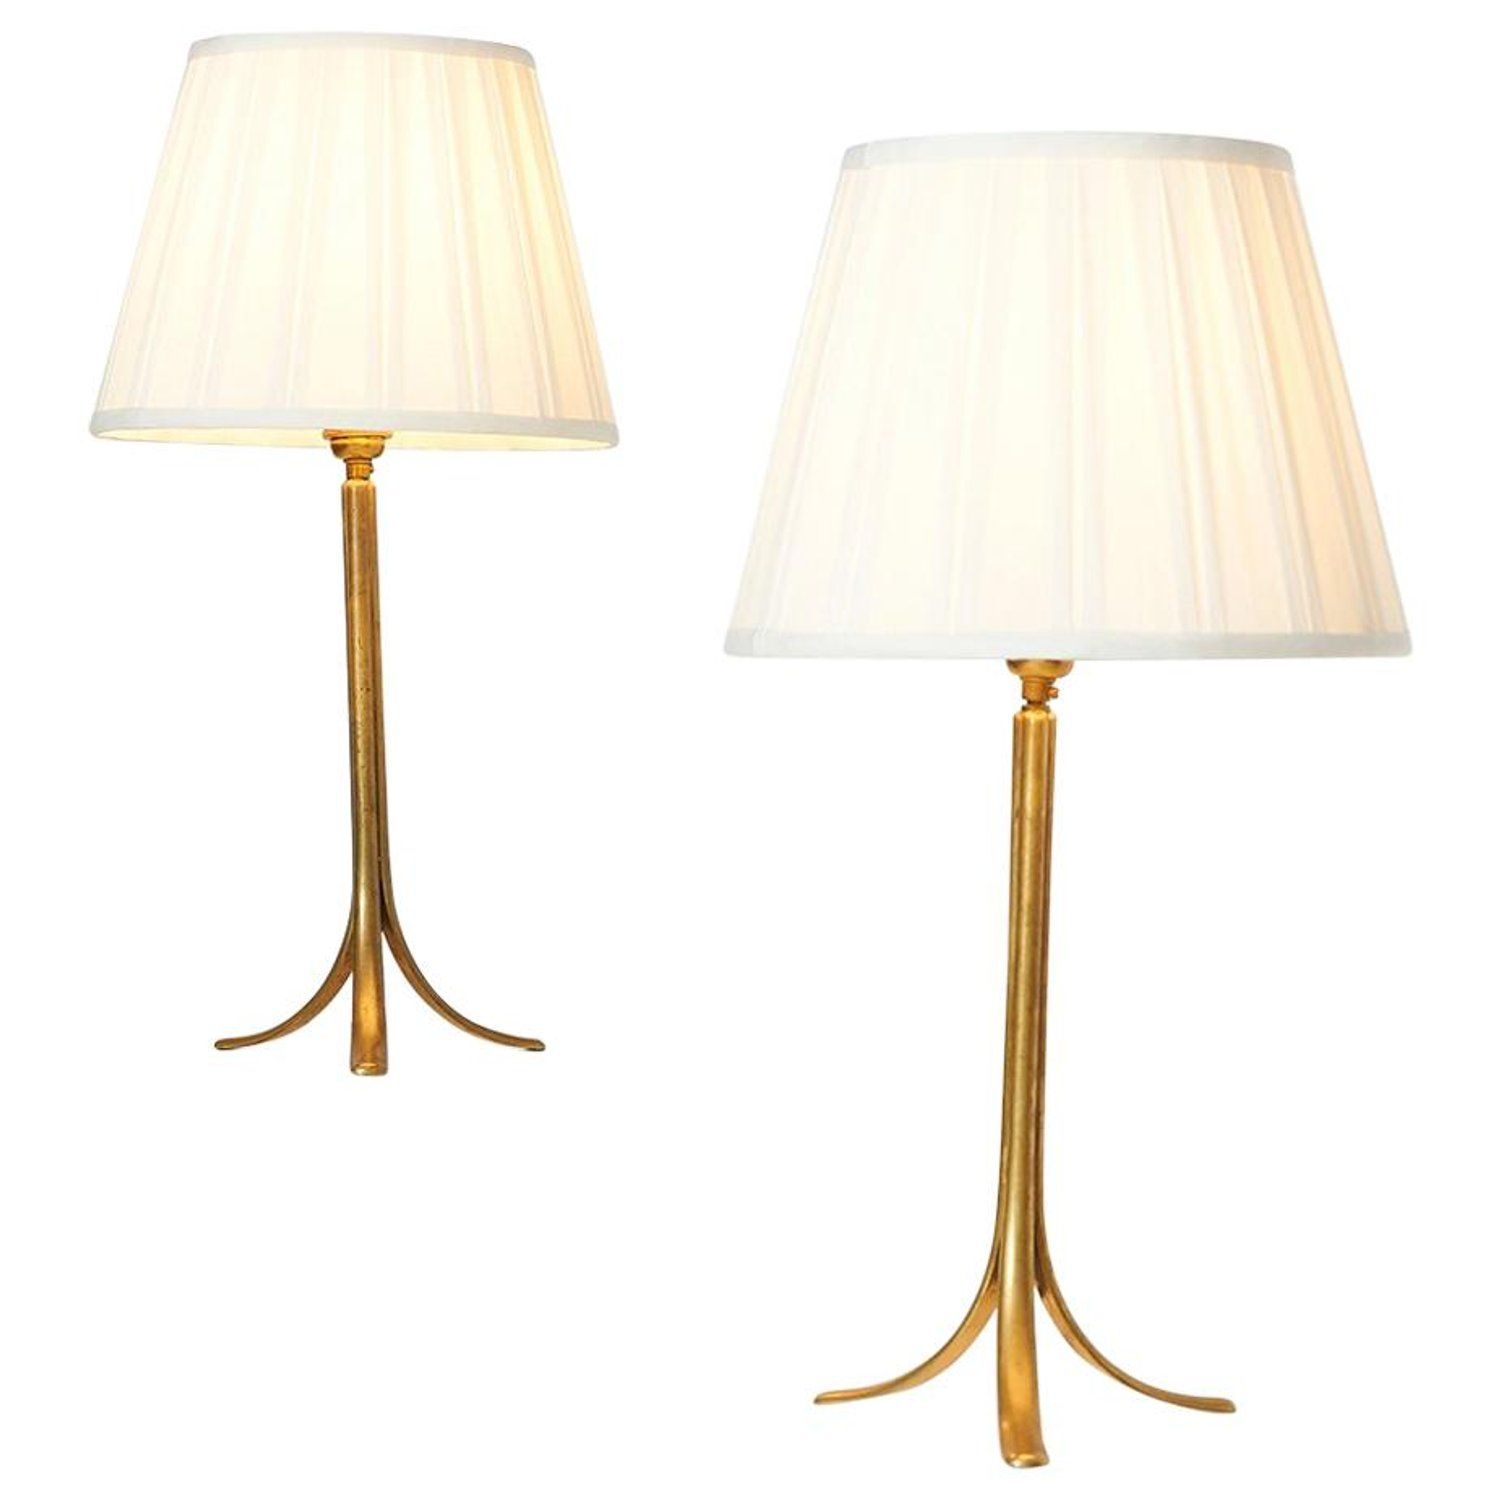 Karl Hagenauer Table Lamps Vienna 1930s Table Lamp Lamp Photo Lamp